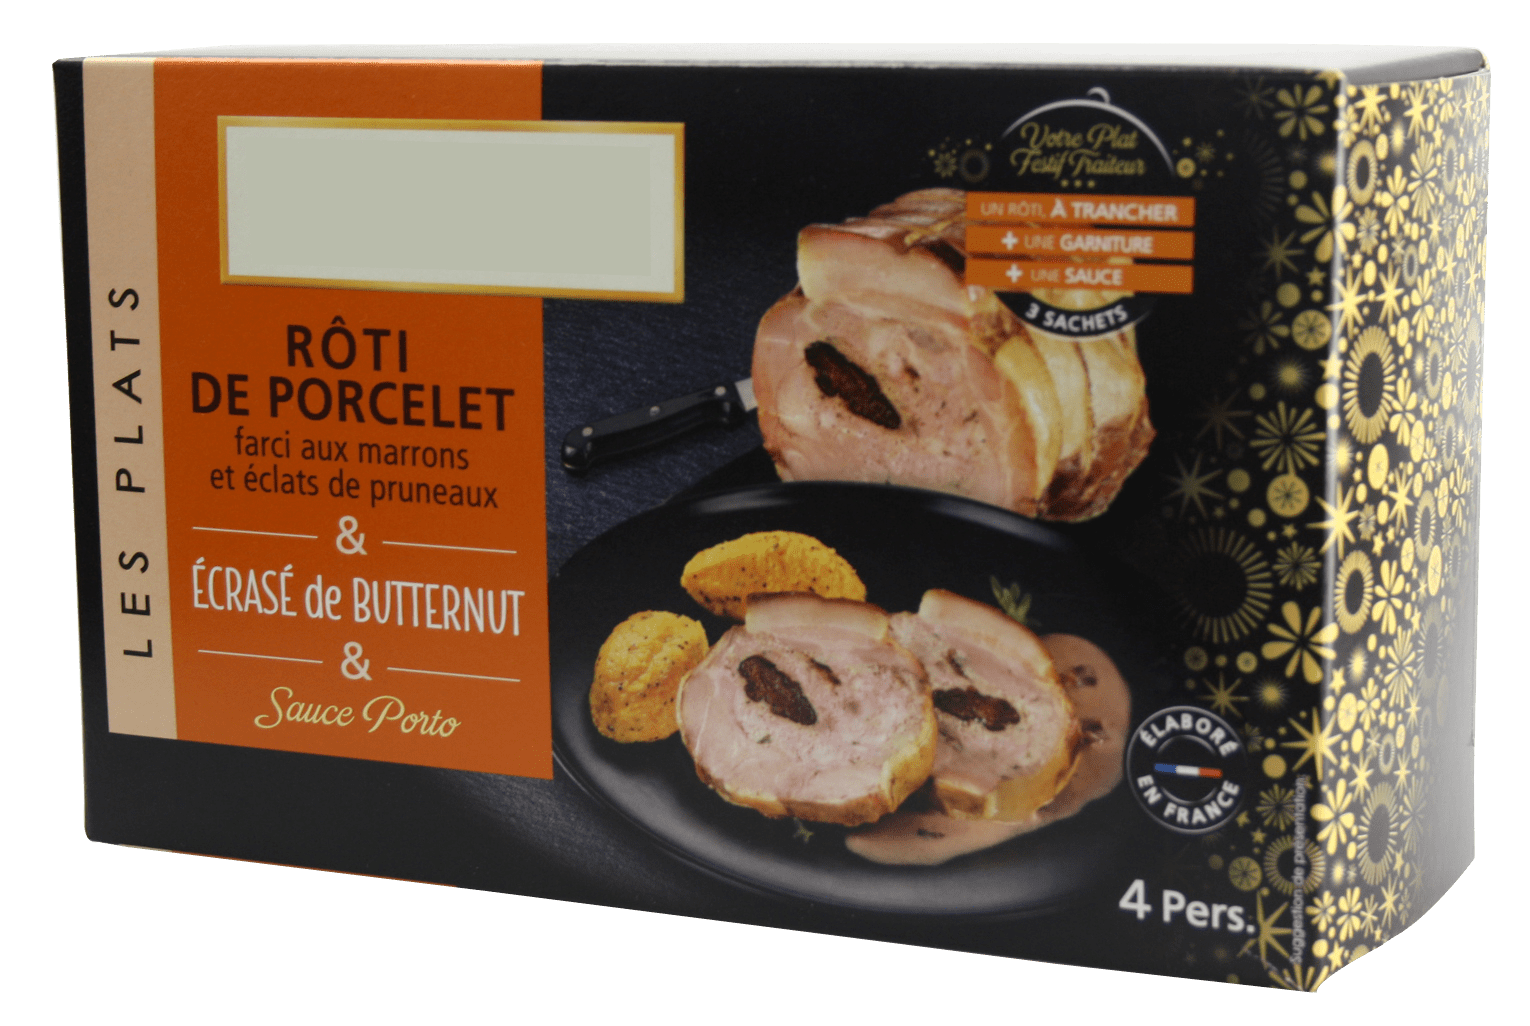 Roast suckling pig, stuffed with prunes and chestnuts: for retail - pack